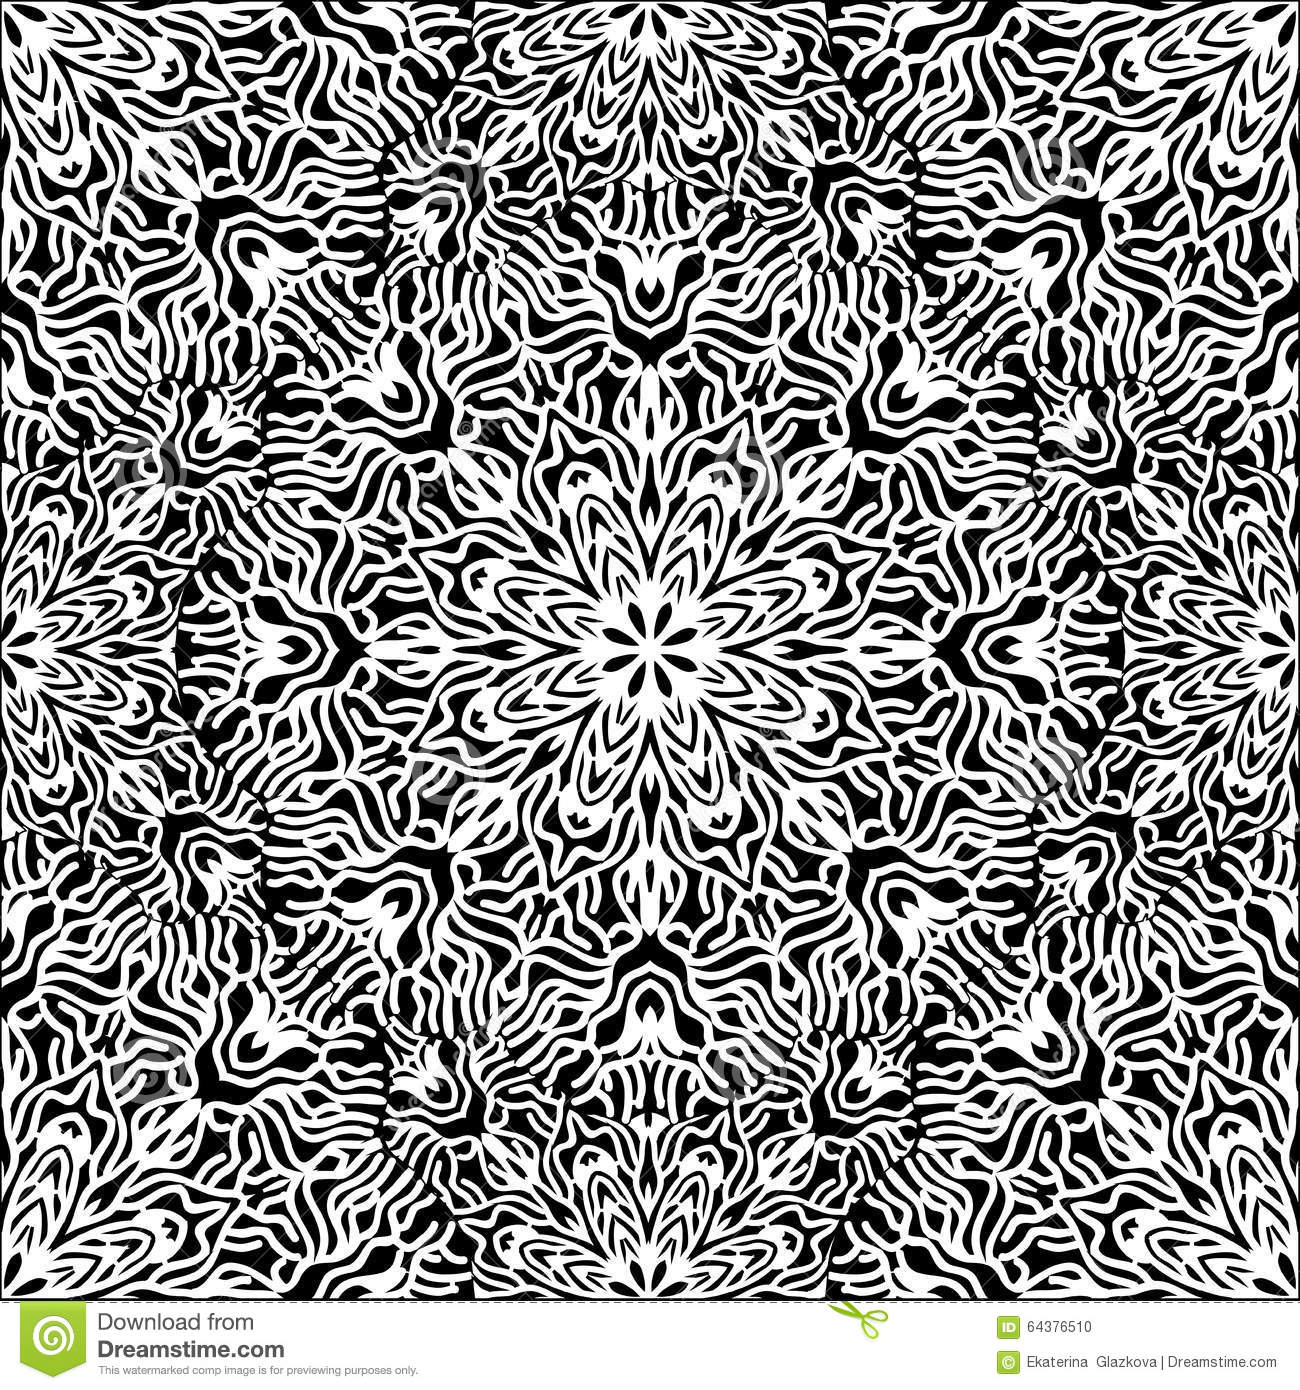 Abstract Circle Coloring Pages : Graphic coral circle pattern stock vector image